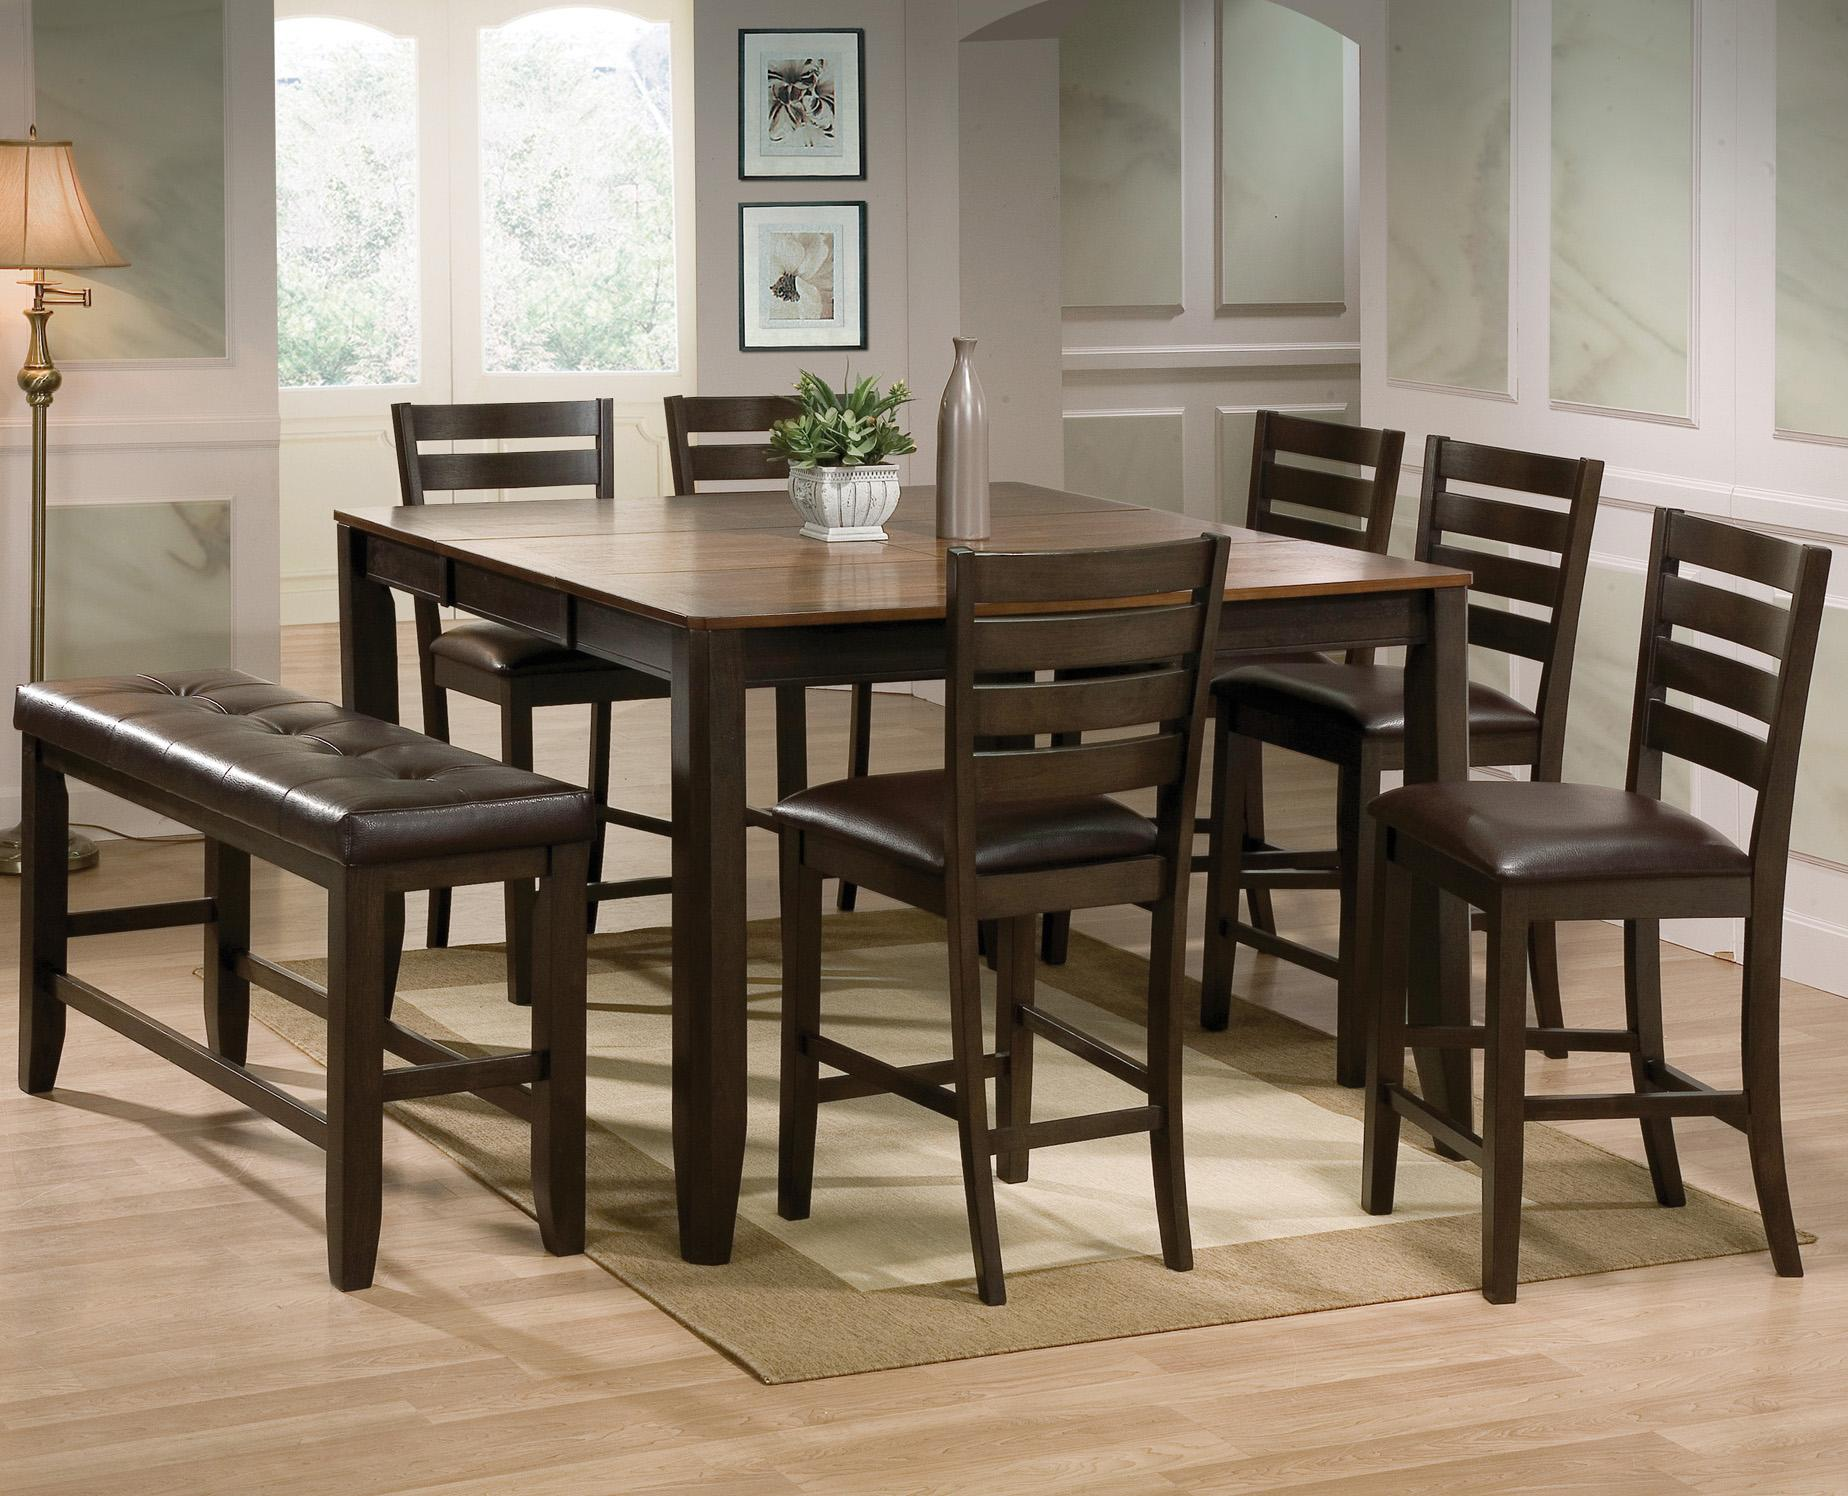 8 Piece Counter Height Table Set